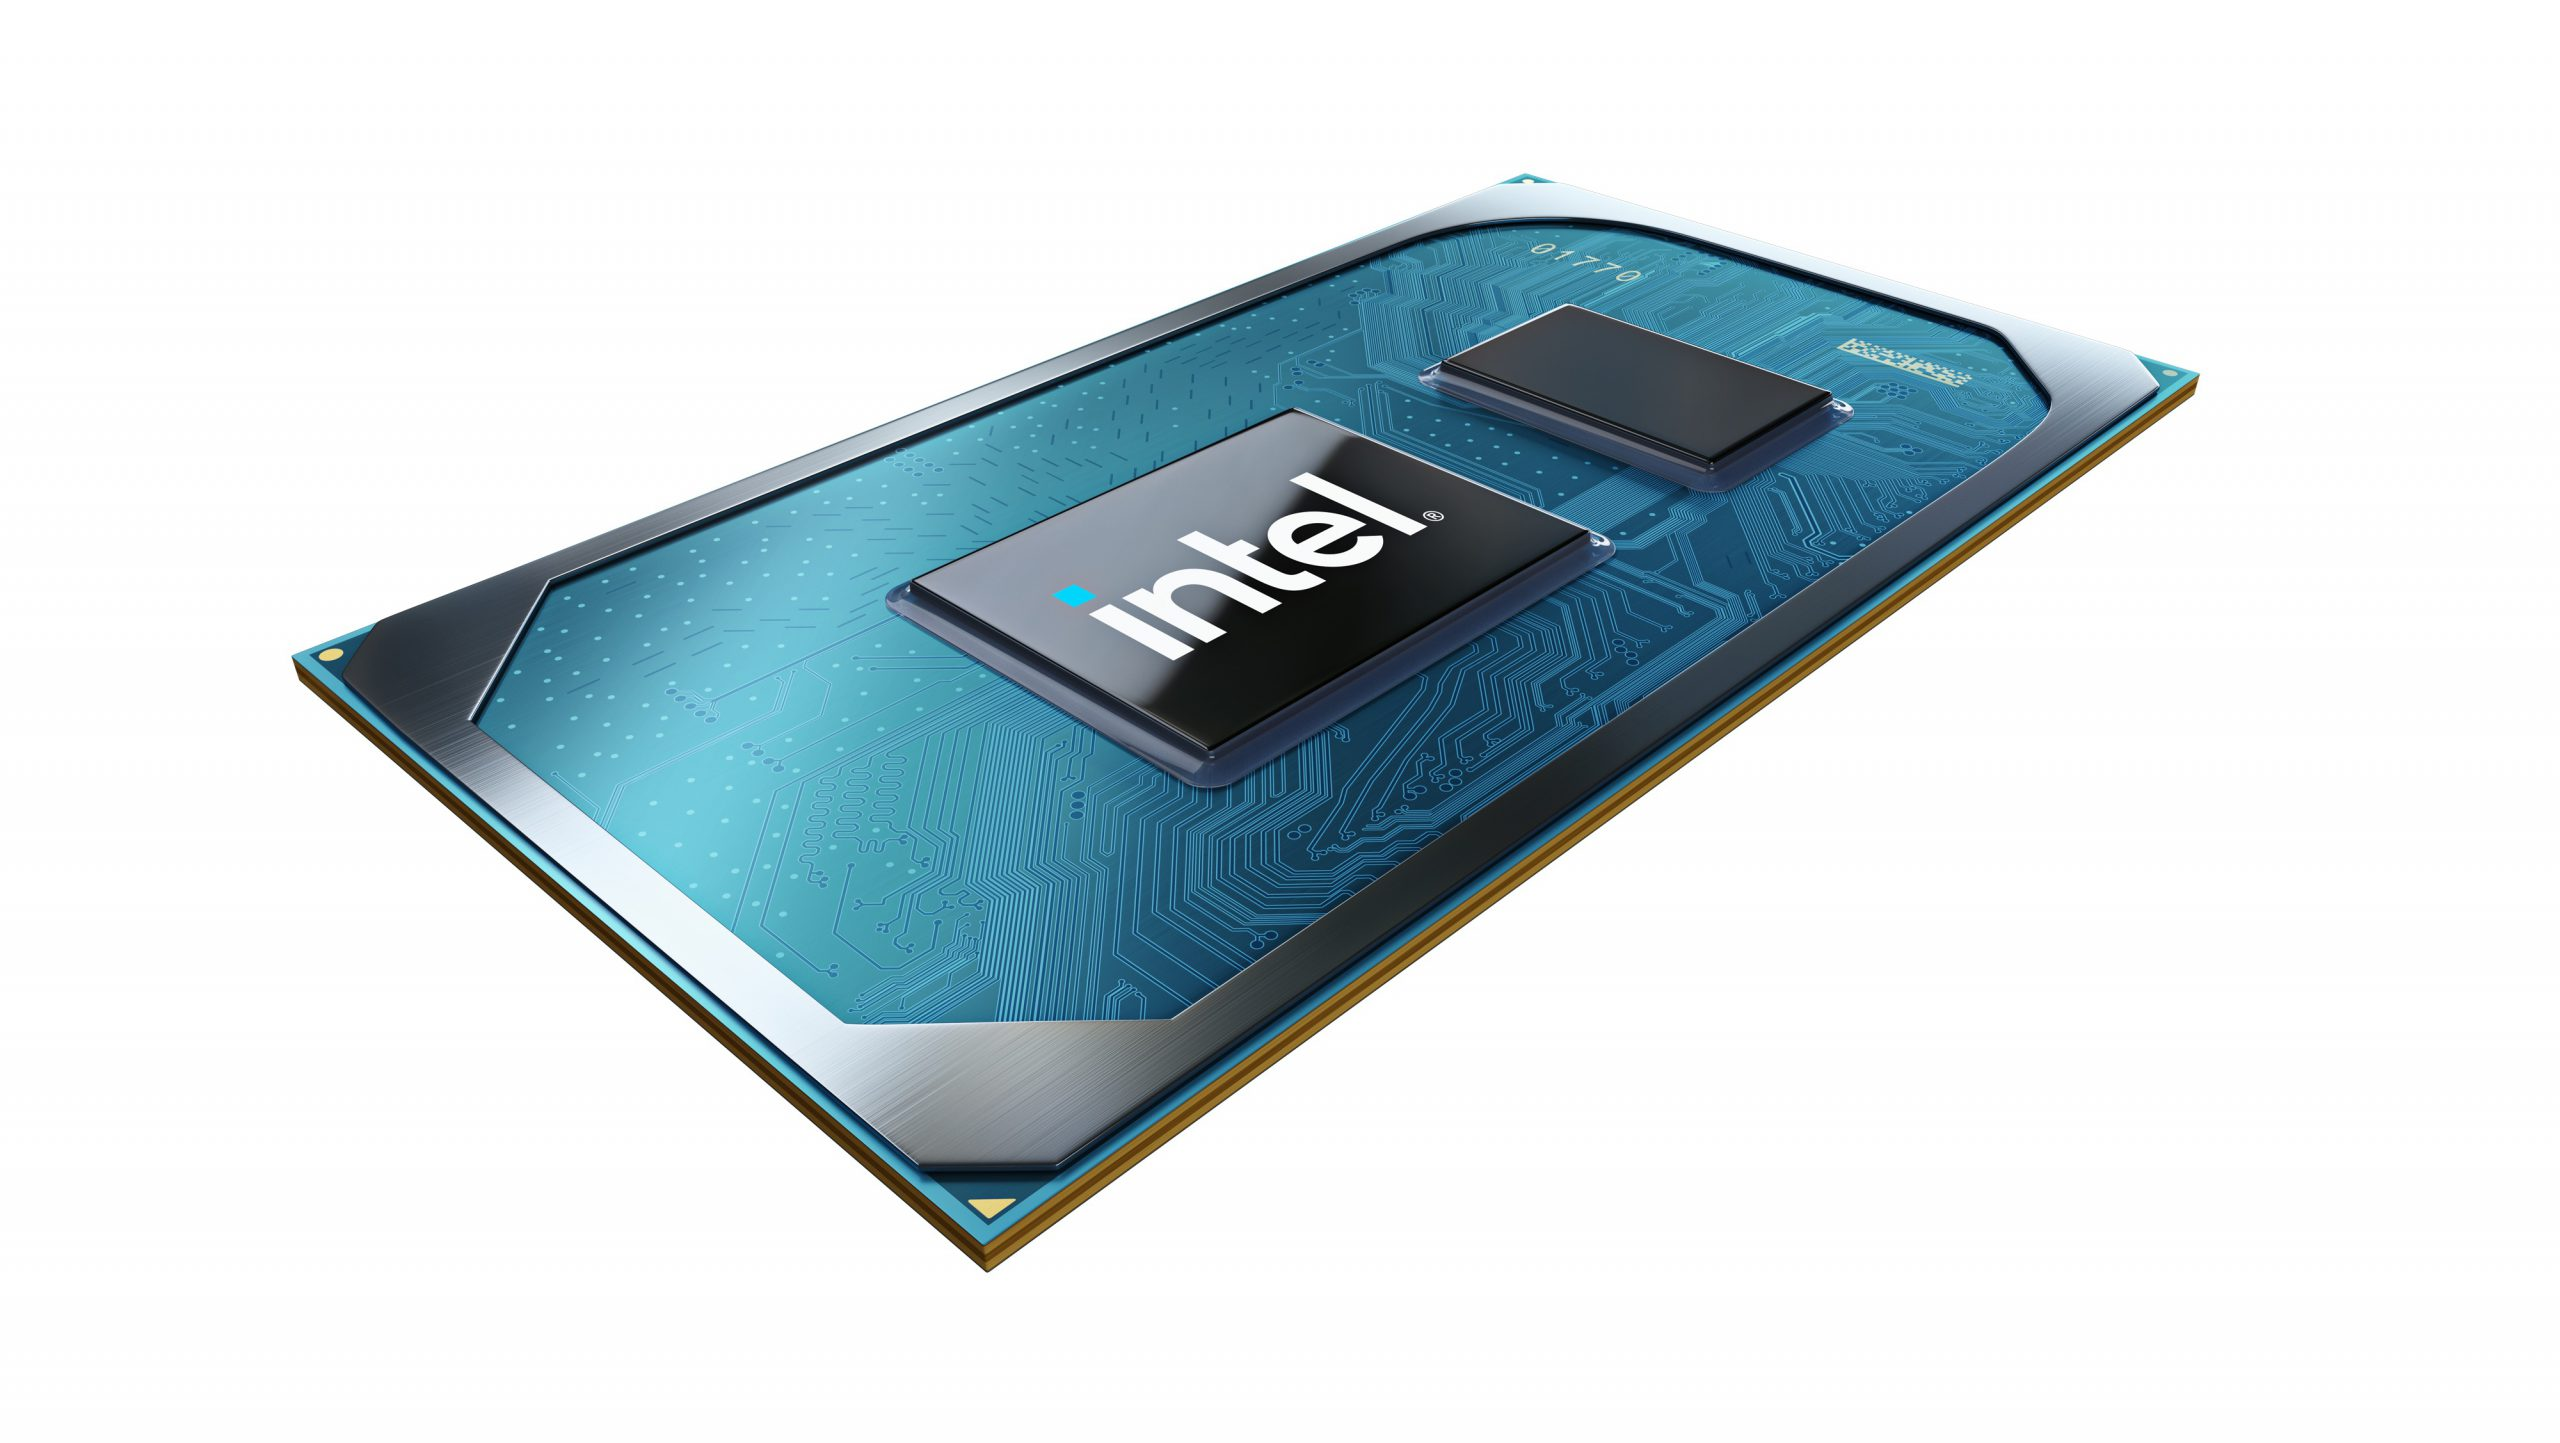 11th Gen Intel Core mobile processors, built on Intel's 10nm SuperFin process, introduce the all-new Willow Cove architecture, which includes new CPU and GPU optimization and capabilities, greater AI acceleration, the fastest connectivity and more. They were introduced on Sept. 2, 2020. (Credit: Intel Corporation)